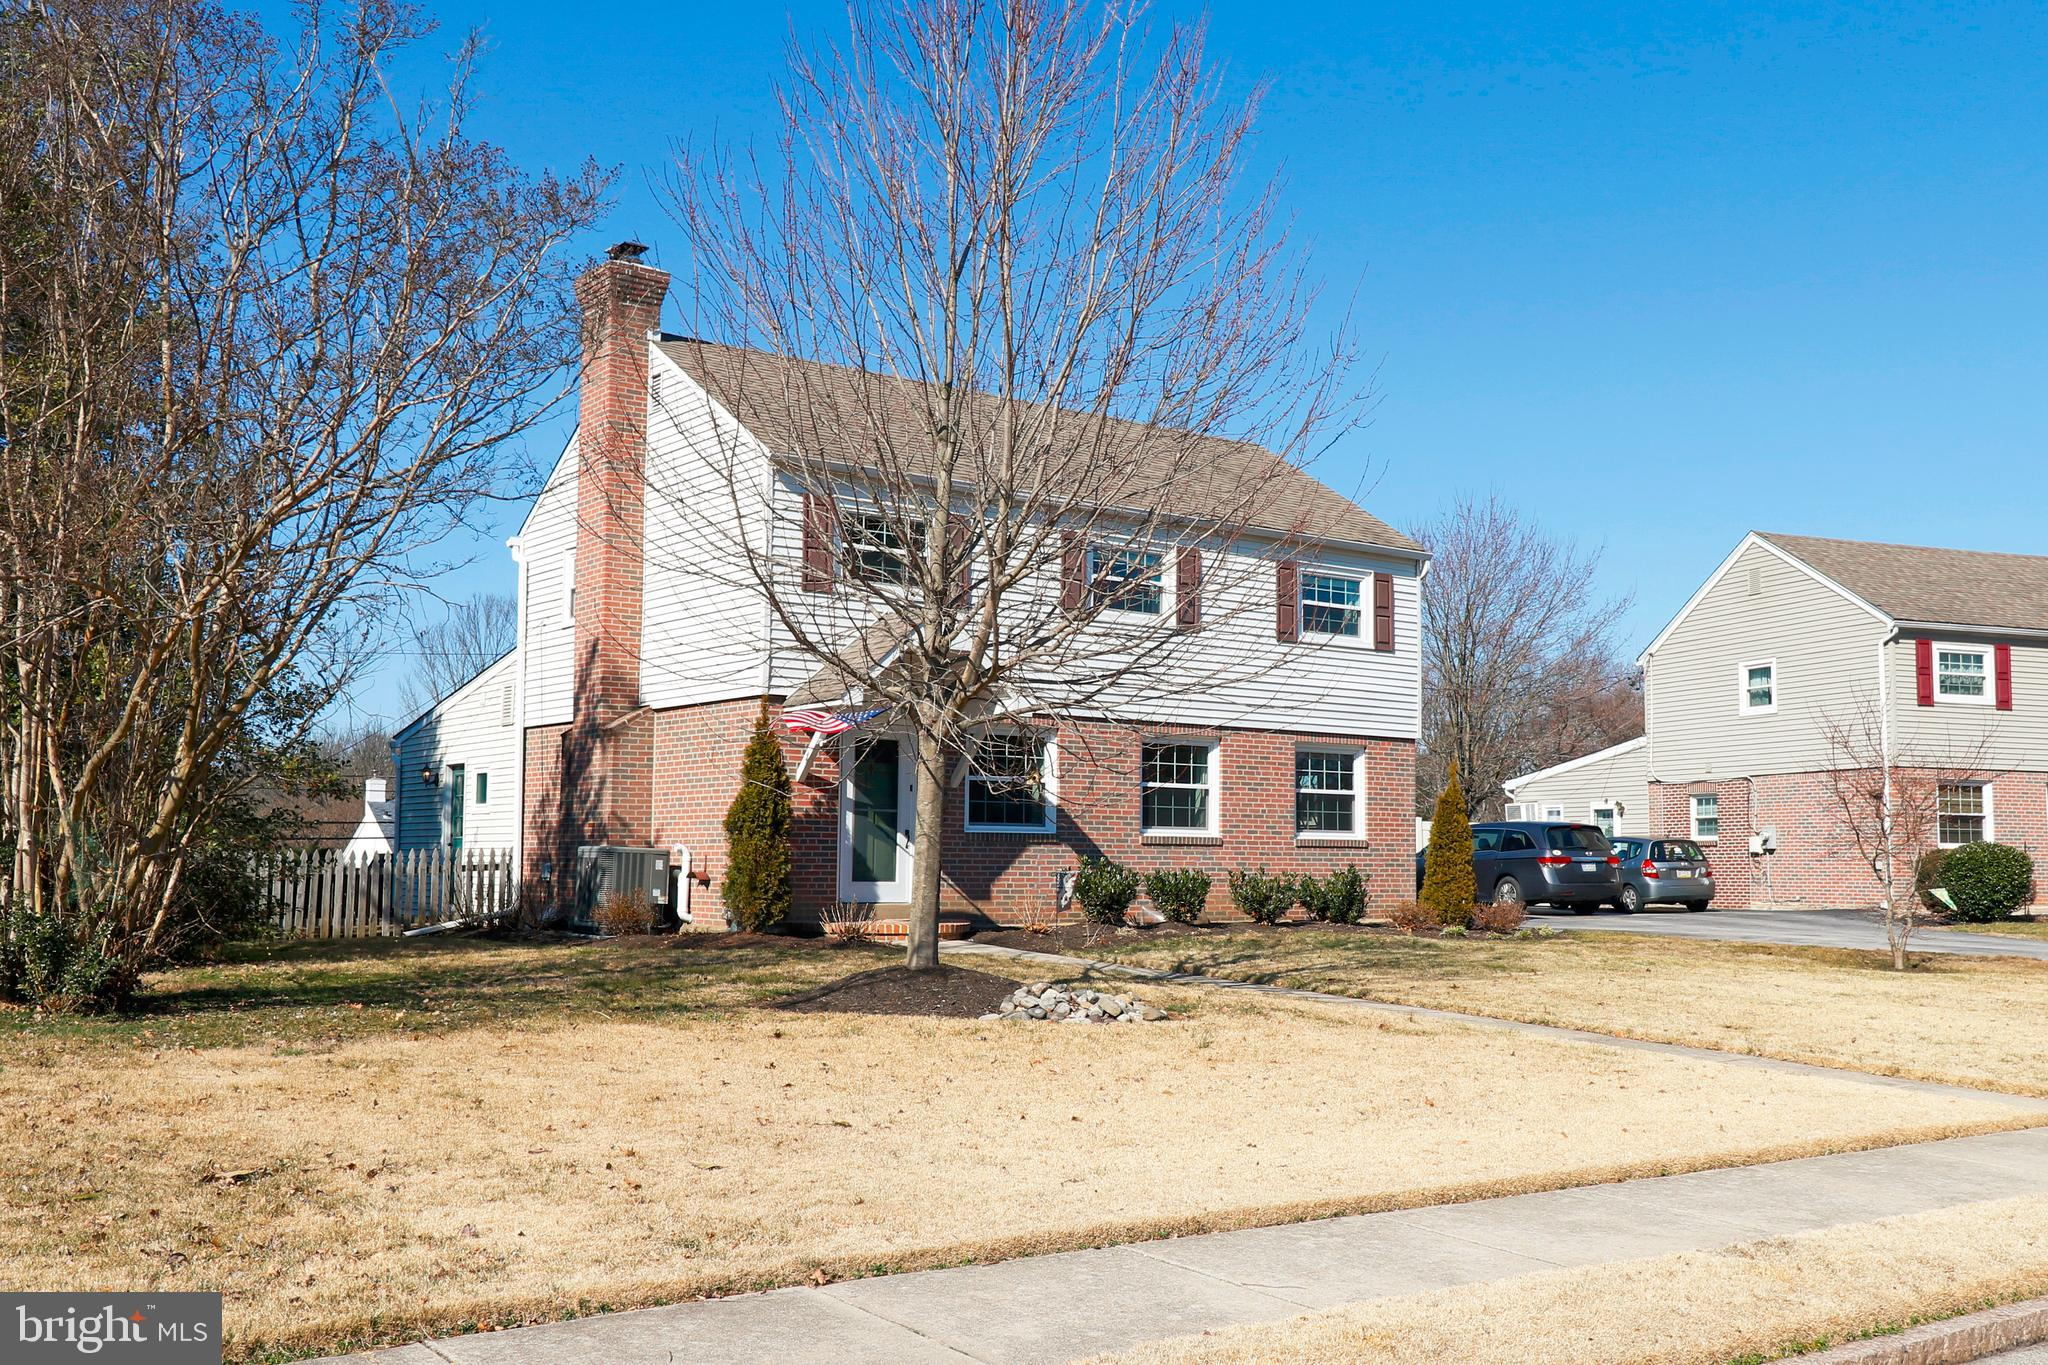 528 MAPLEWOOD ROAD, SPRINGFIELD, PA 19064